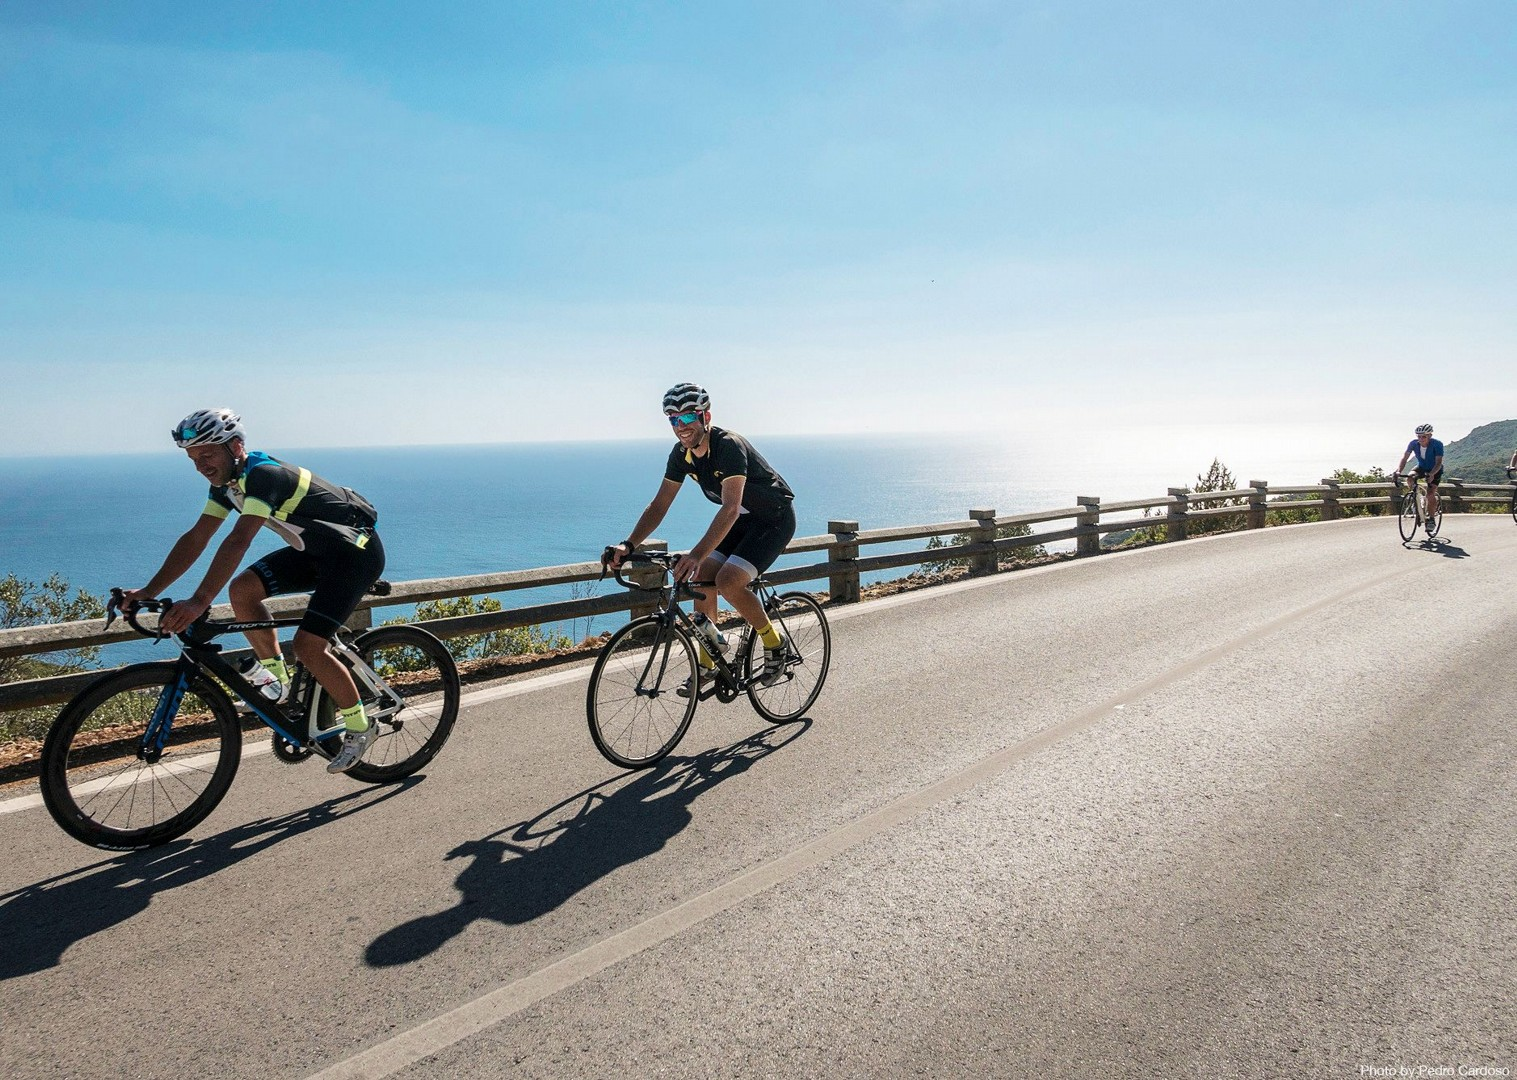 portugal-atlantic-escape.jpg - Portugal - Atlantic Escape - Guided Road Cycling Holiday - Road Cycling